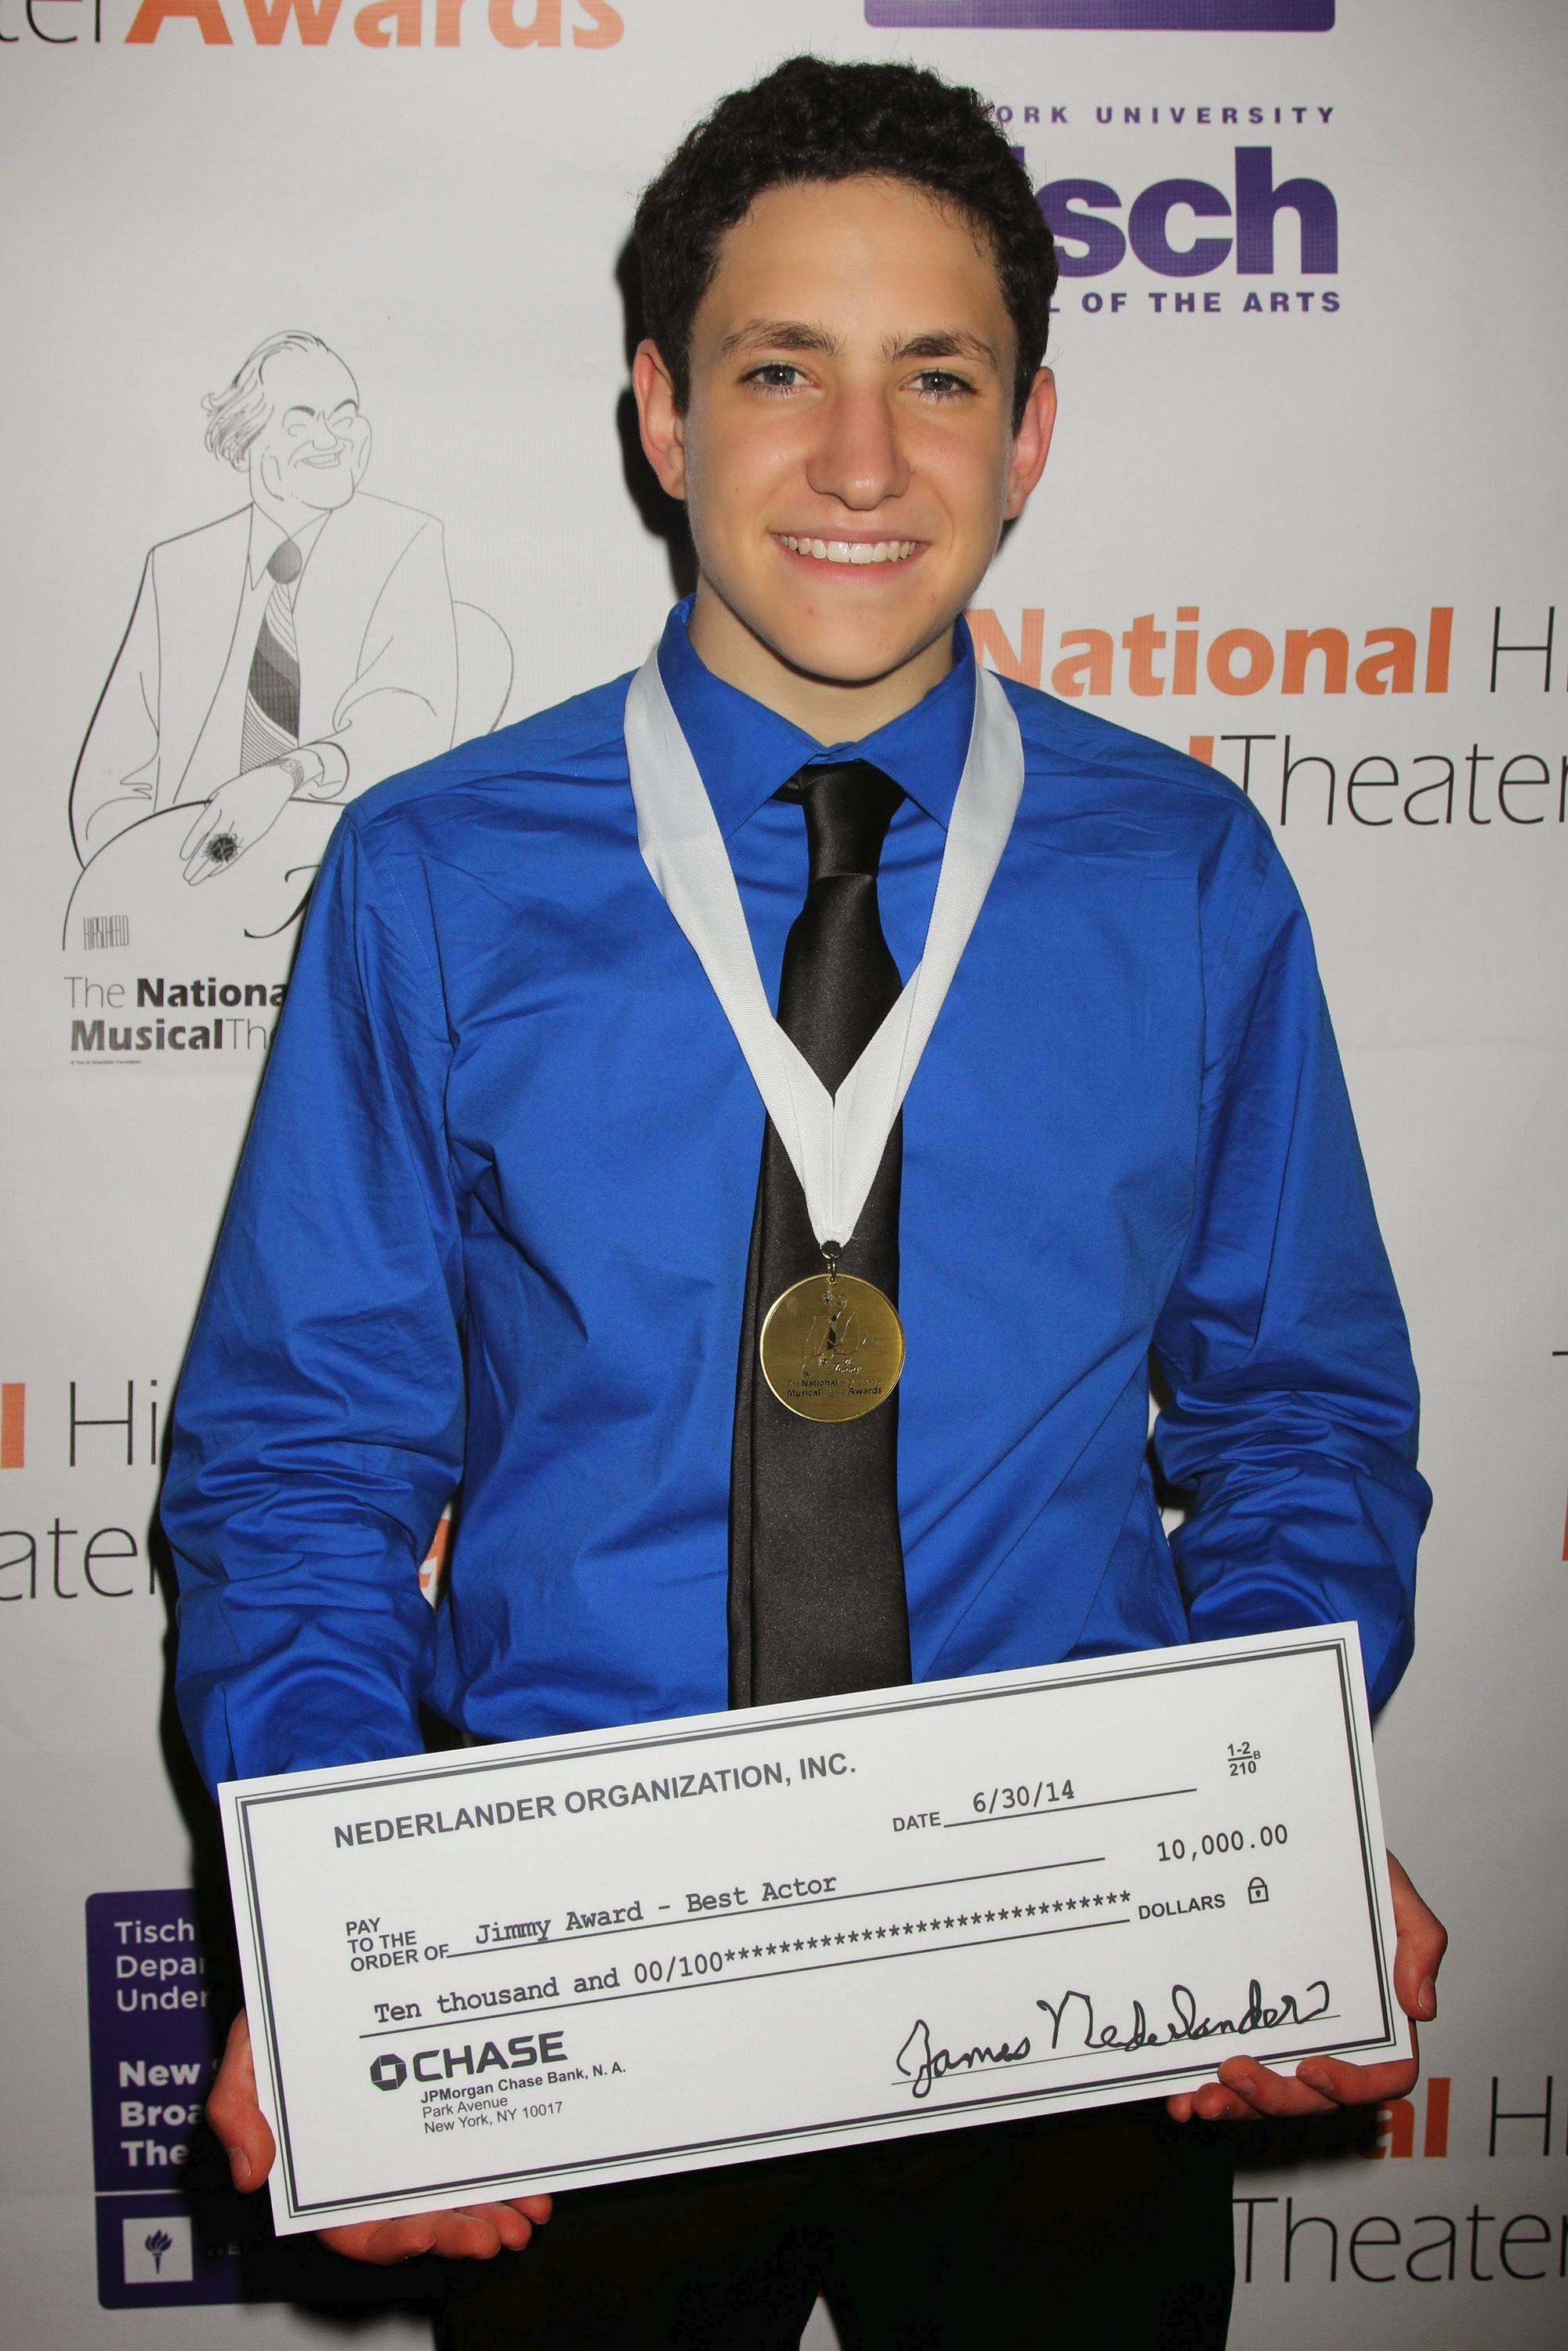 Jonah Rawitz of Buffalo Grove Monday won $10,000 and a Jimmy Award for best performance by an actor at the National High School Musical Theater Awards.